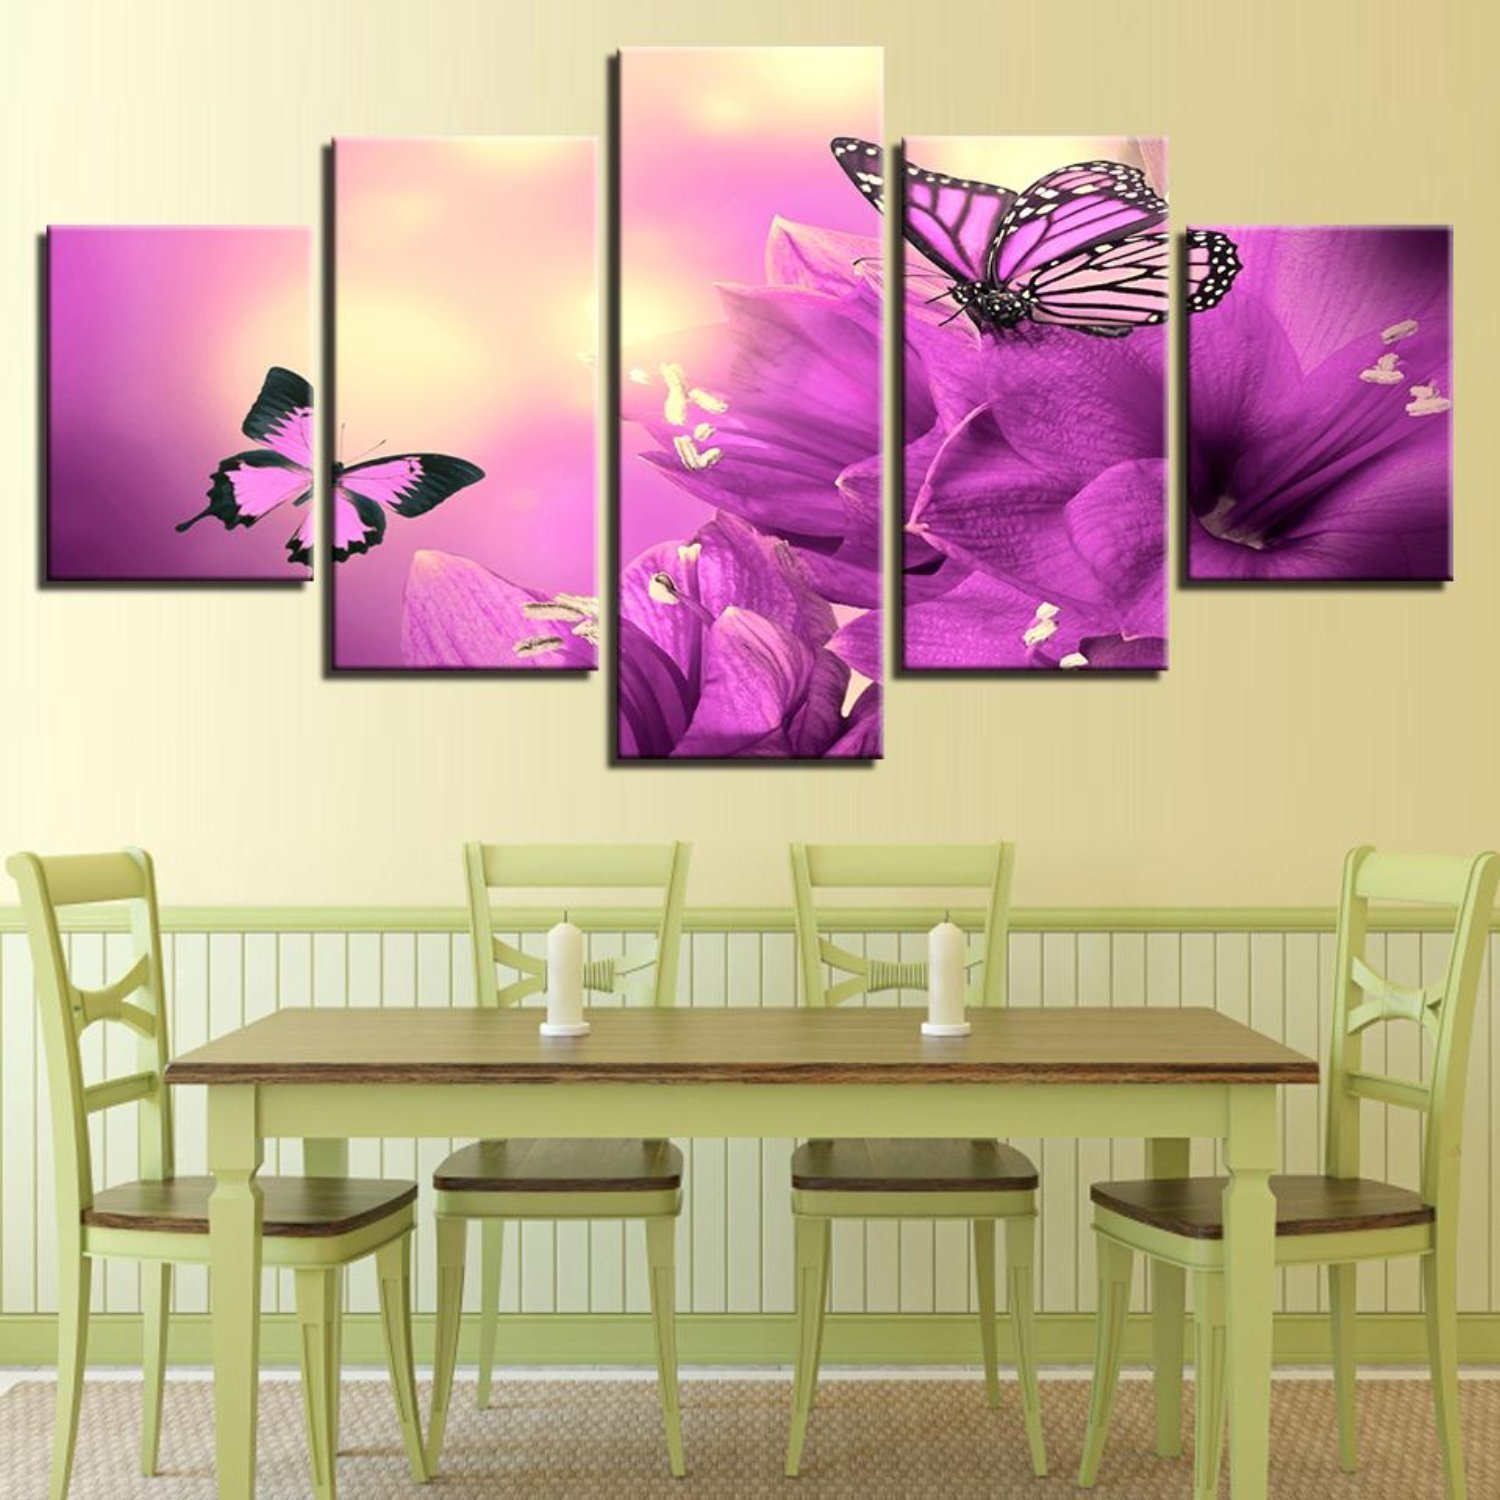 Amazon.com: Canvas Wall Art Pictures Home Decor Living Room 5 Pieces ...